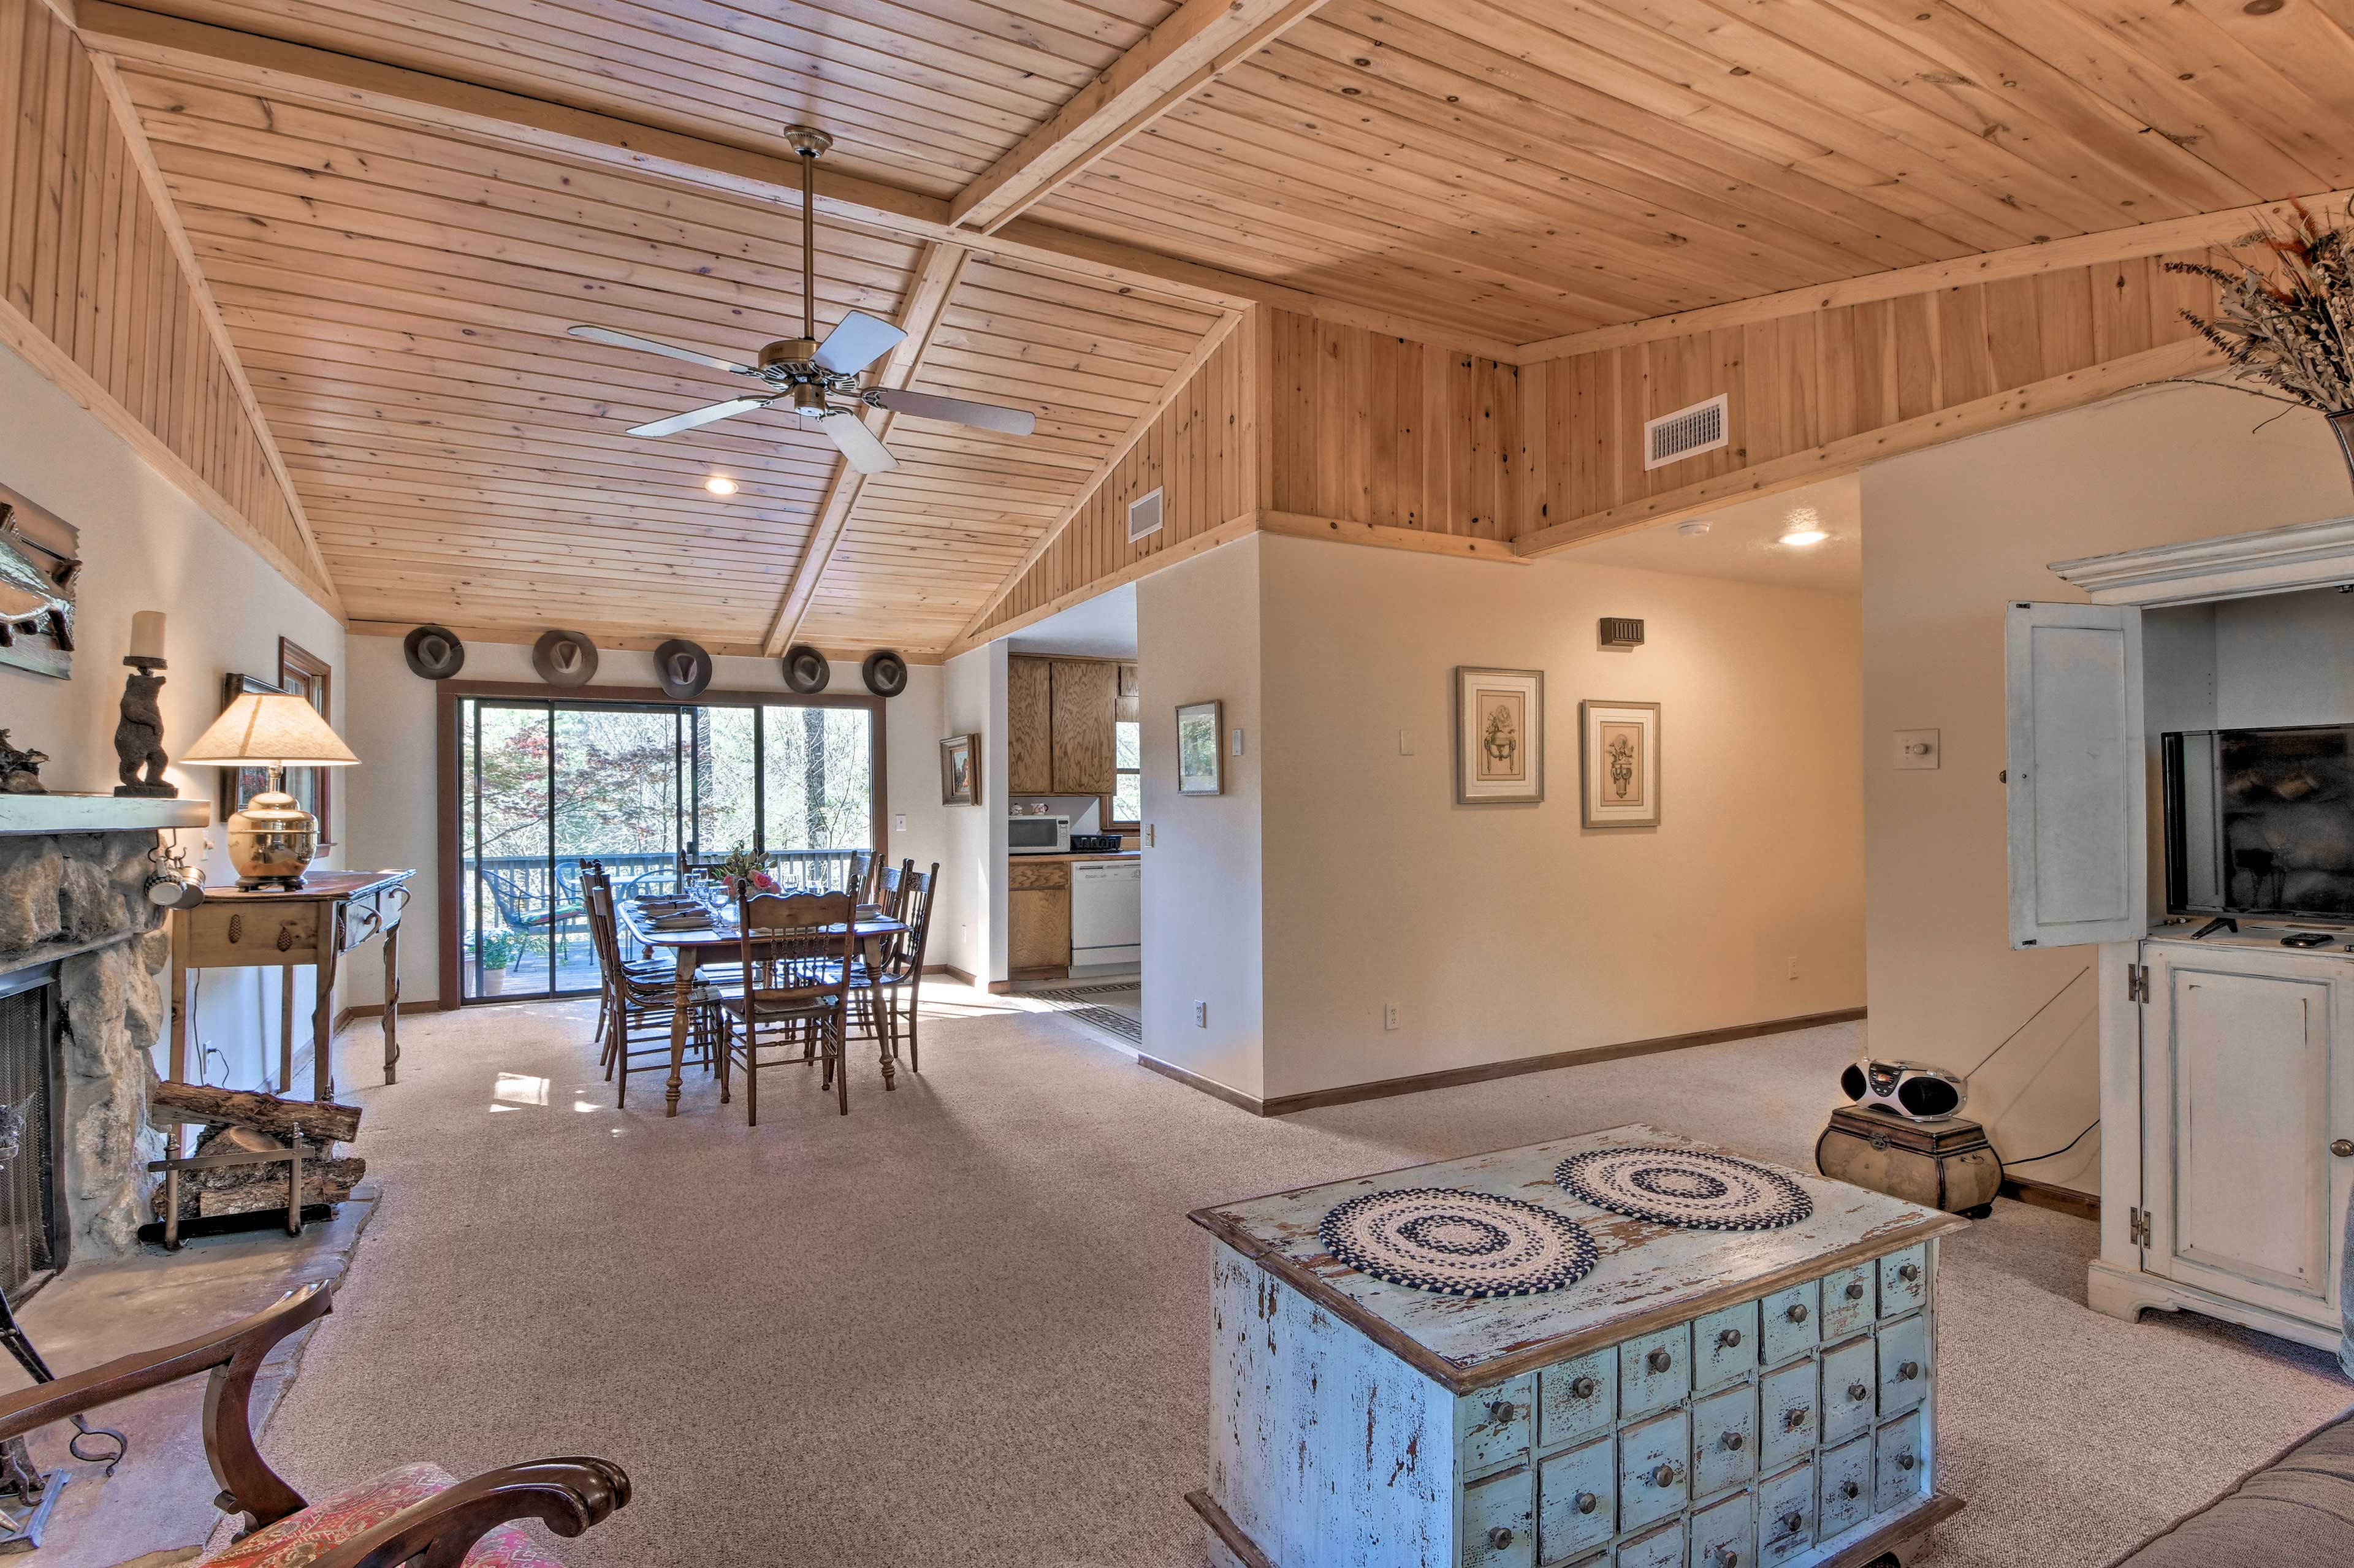 Inside, you'll find all of the comforts of home and a spacious layout.